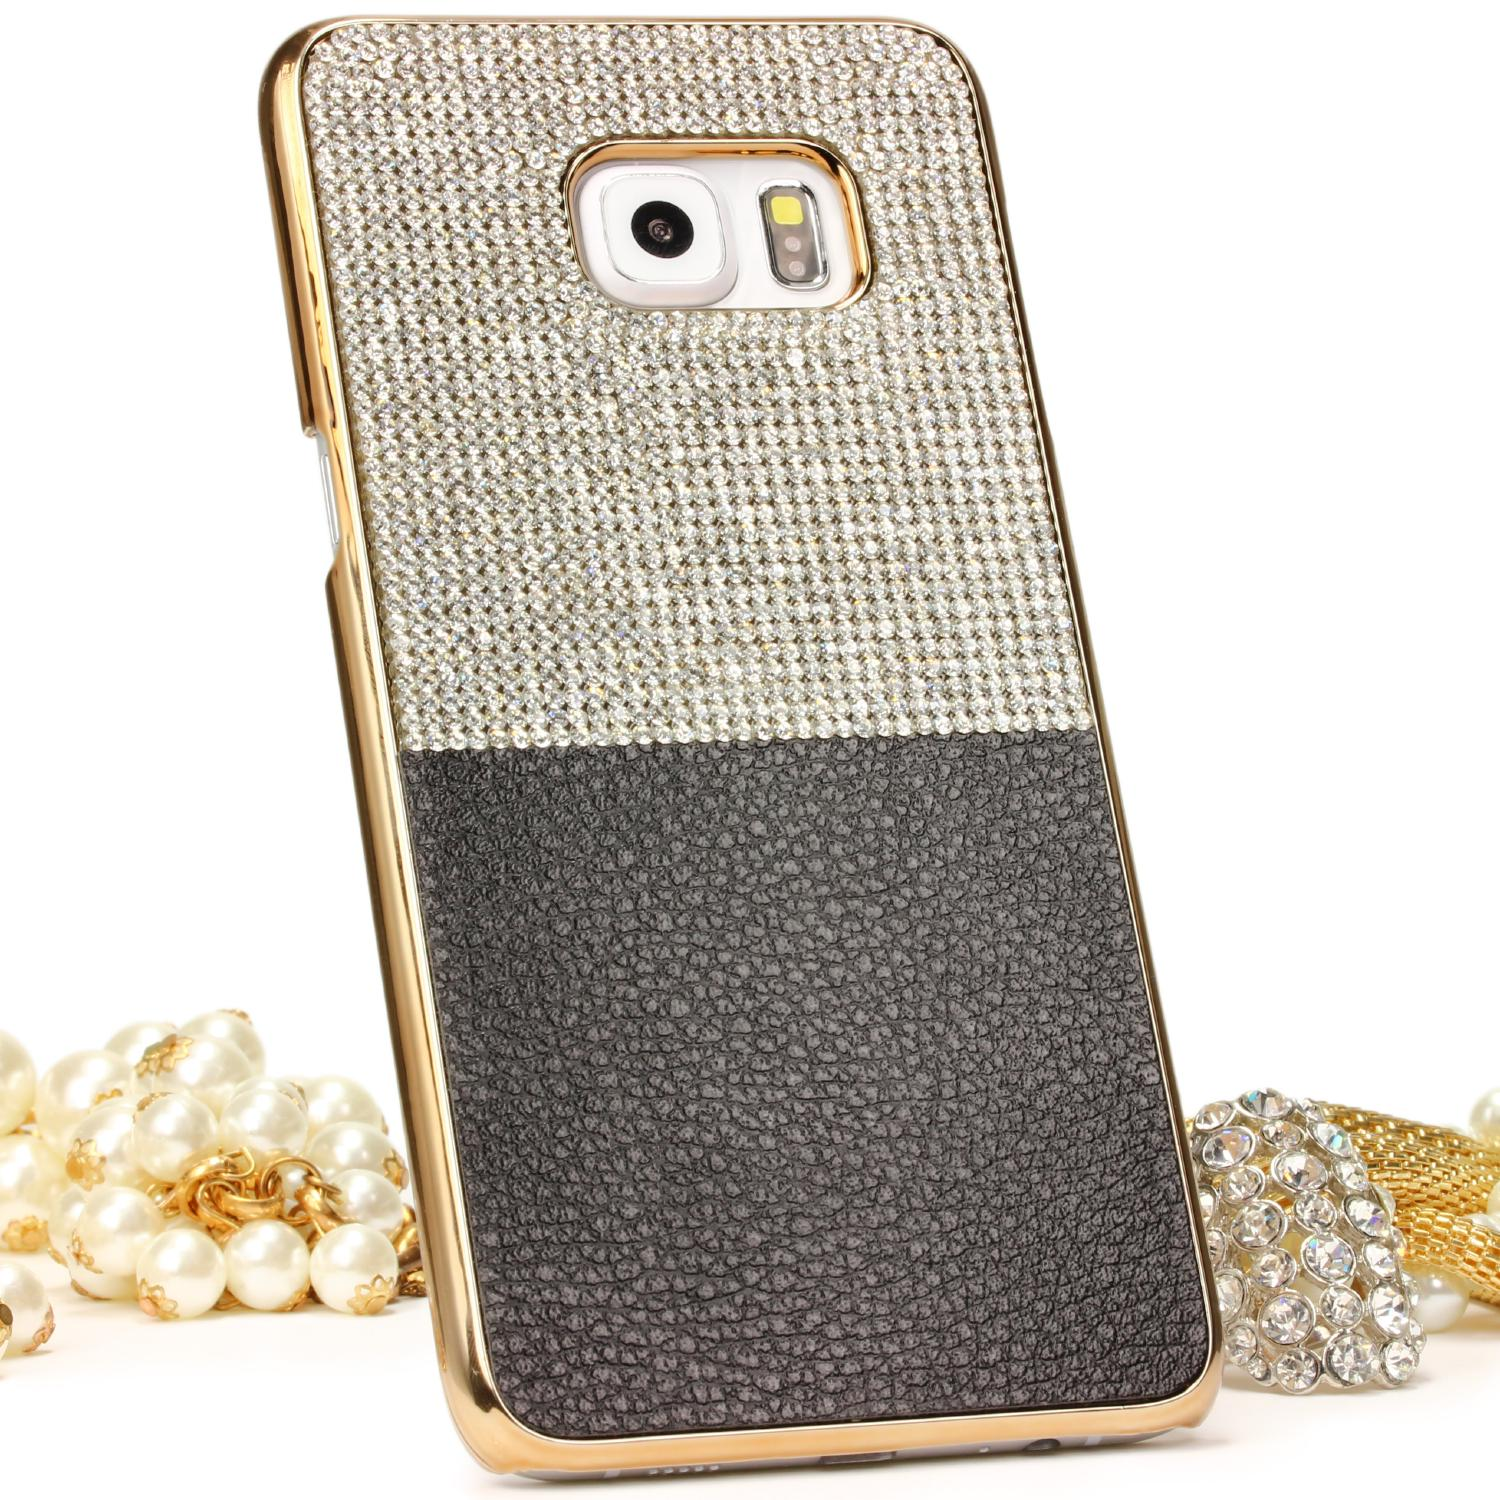 Urcover Samsung Galaxy S6 Edge Plus Schutz Hülle Glitzer Bling Case Cover Strass Backcase Galaxy S6 Edge Plus Smartphone Samsung